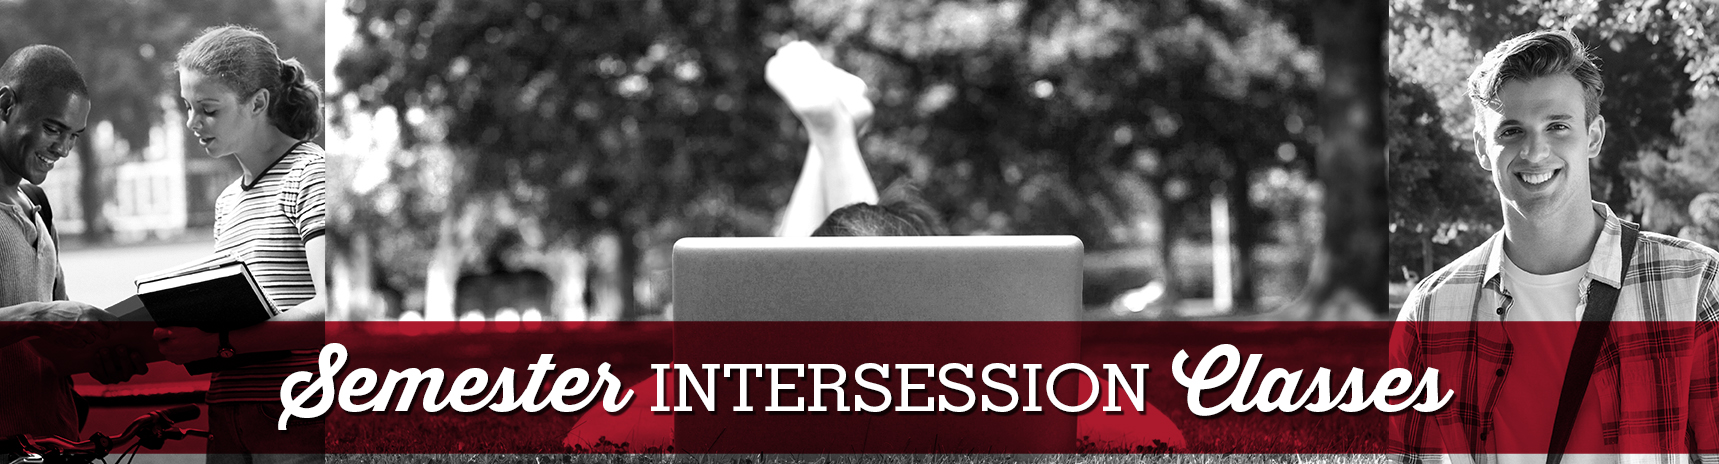 Semester Intersession Classes - four week online classes